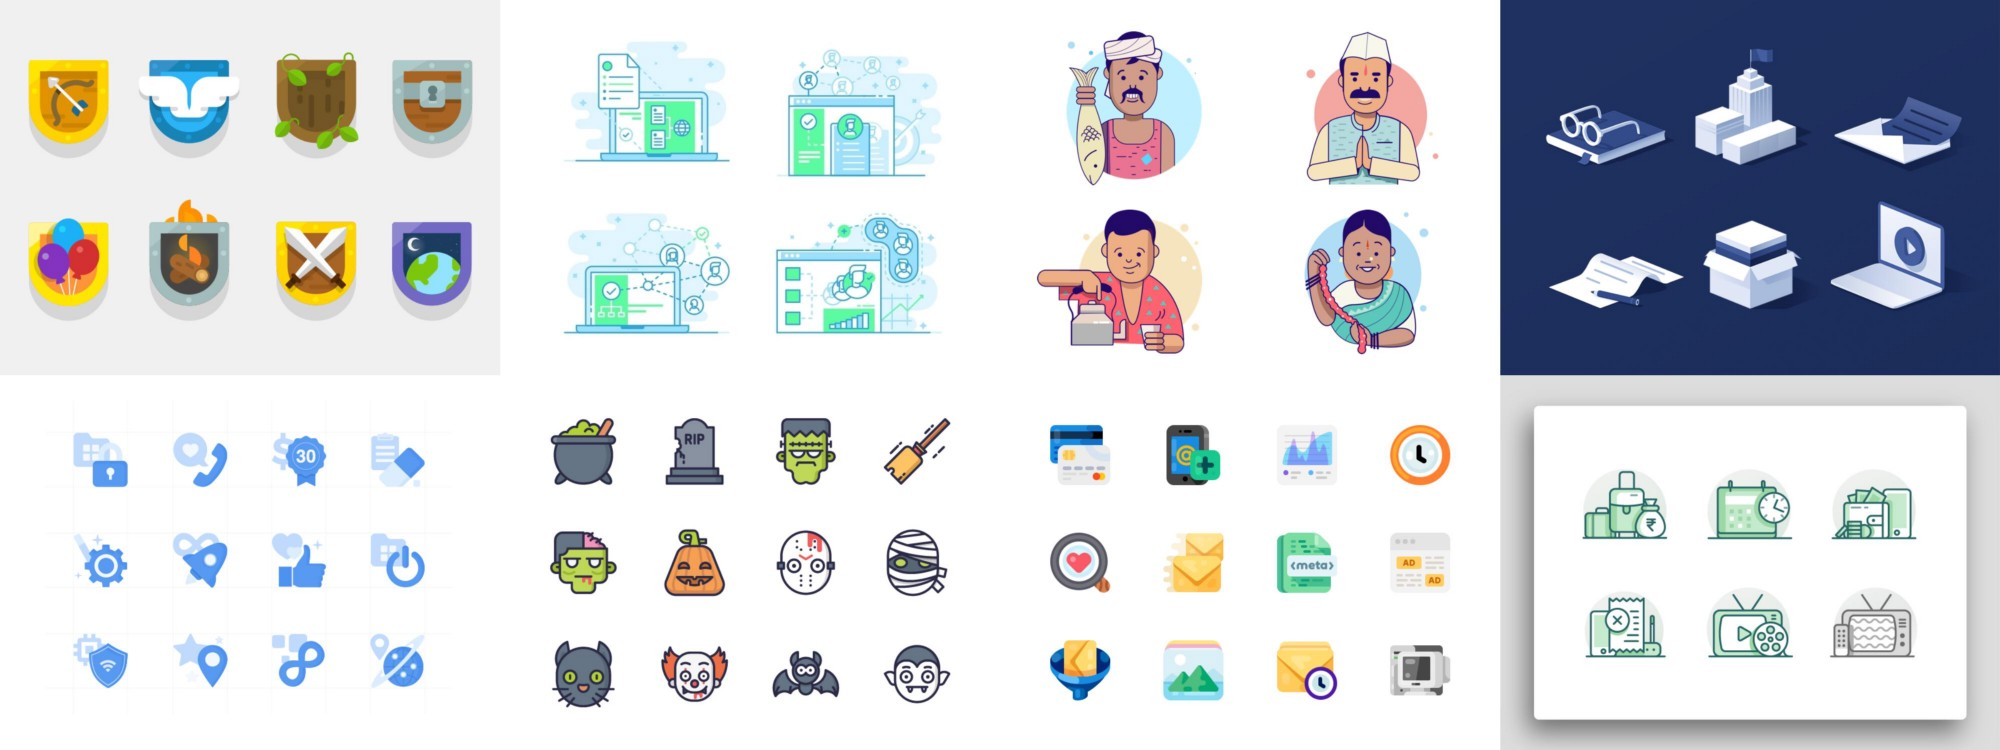 Heres Our Twentieth Article On Blog Series Icon Design Inspiration This Time Weve Picked 16 Best Shots Which Include Really Good Icons And